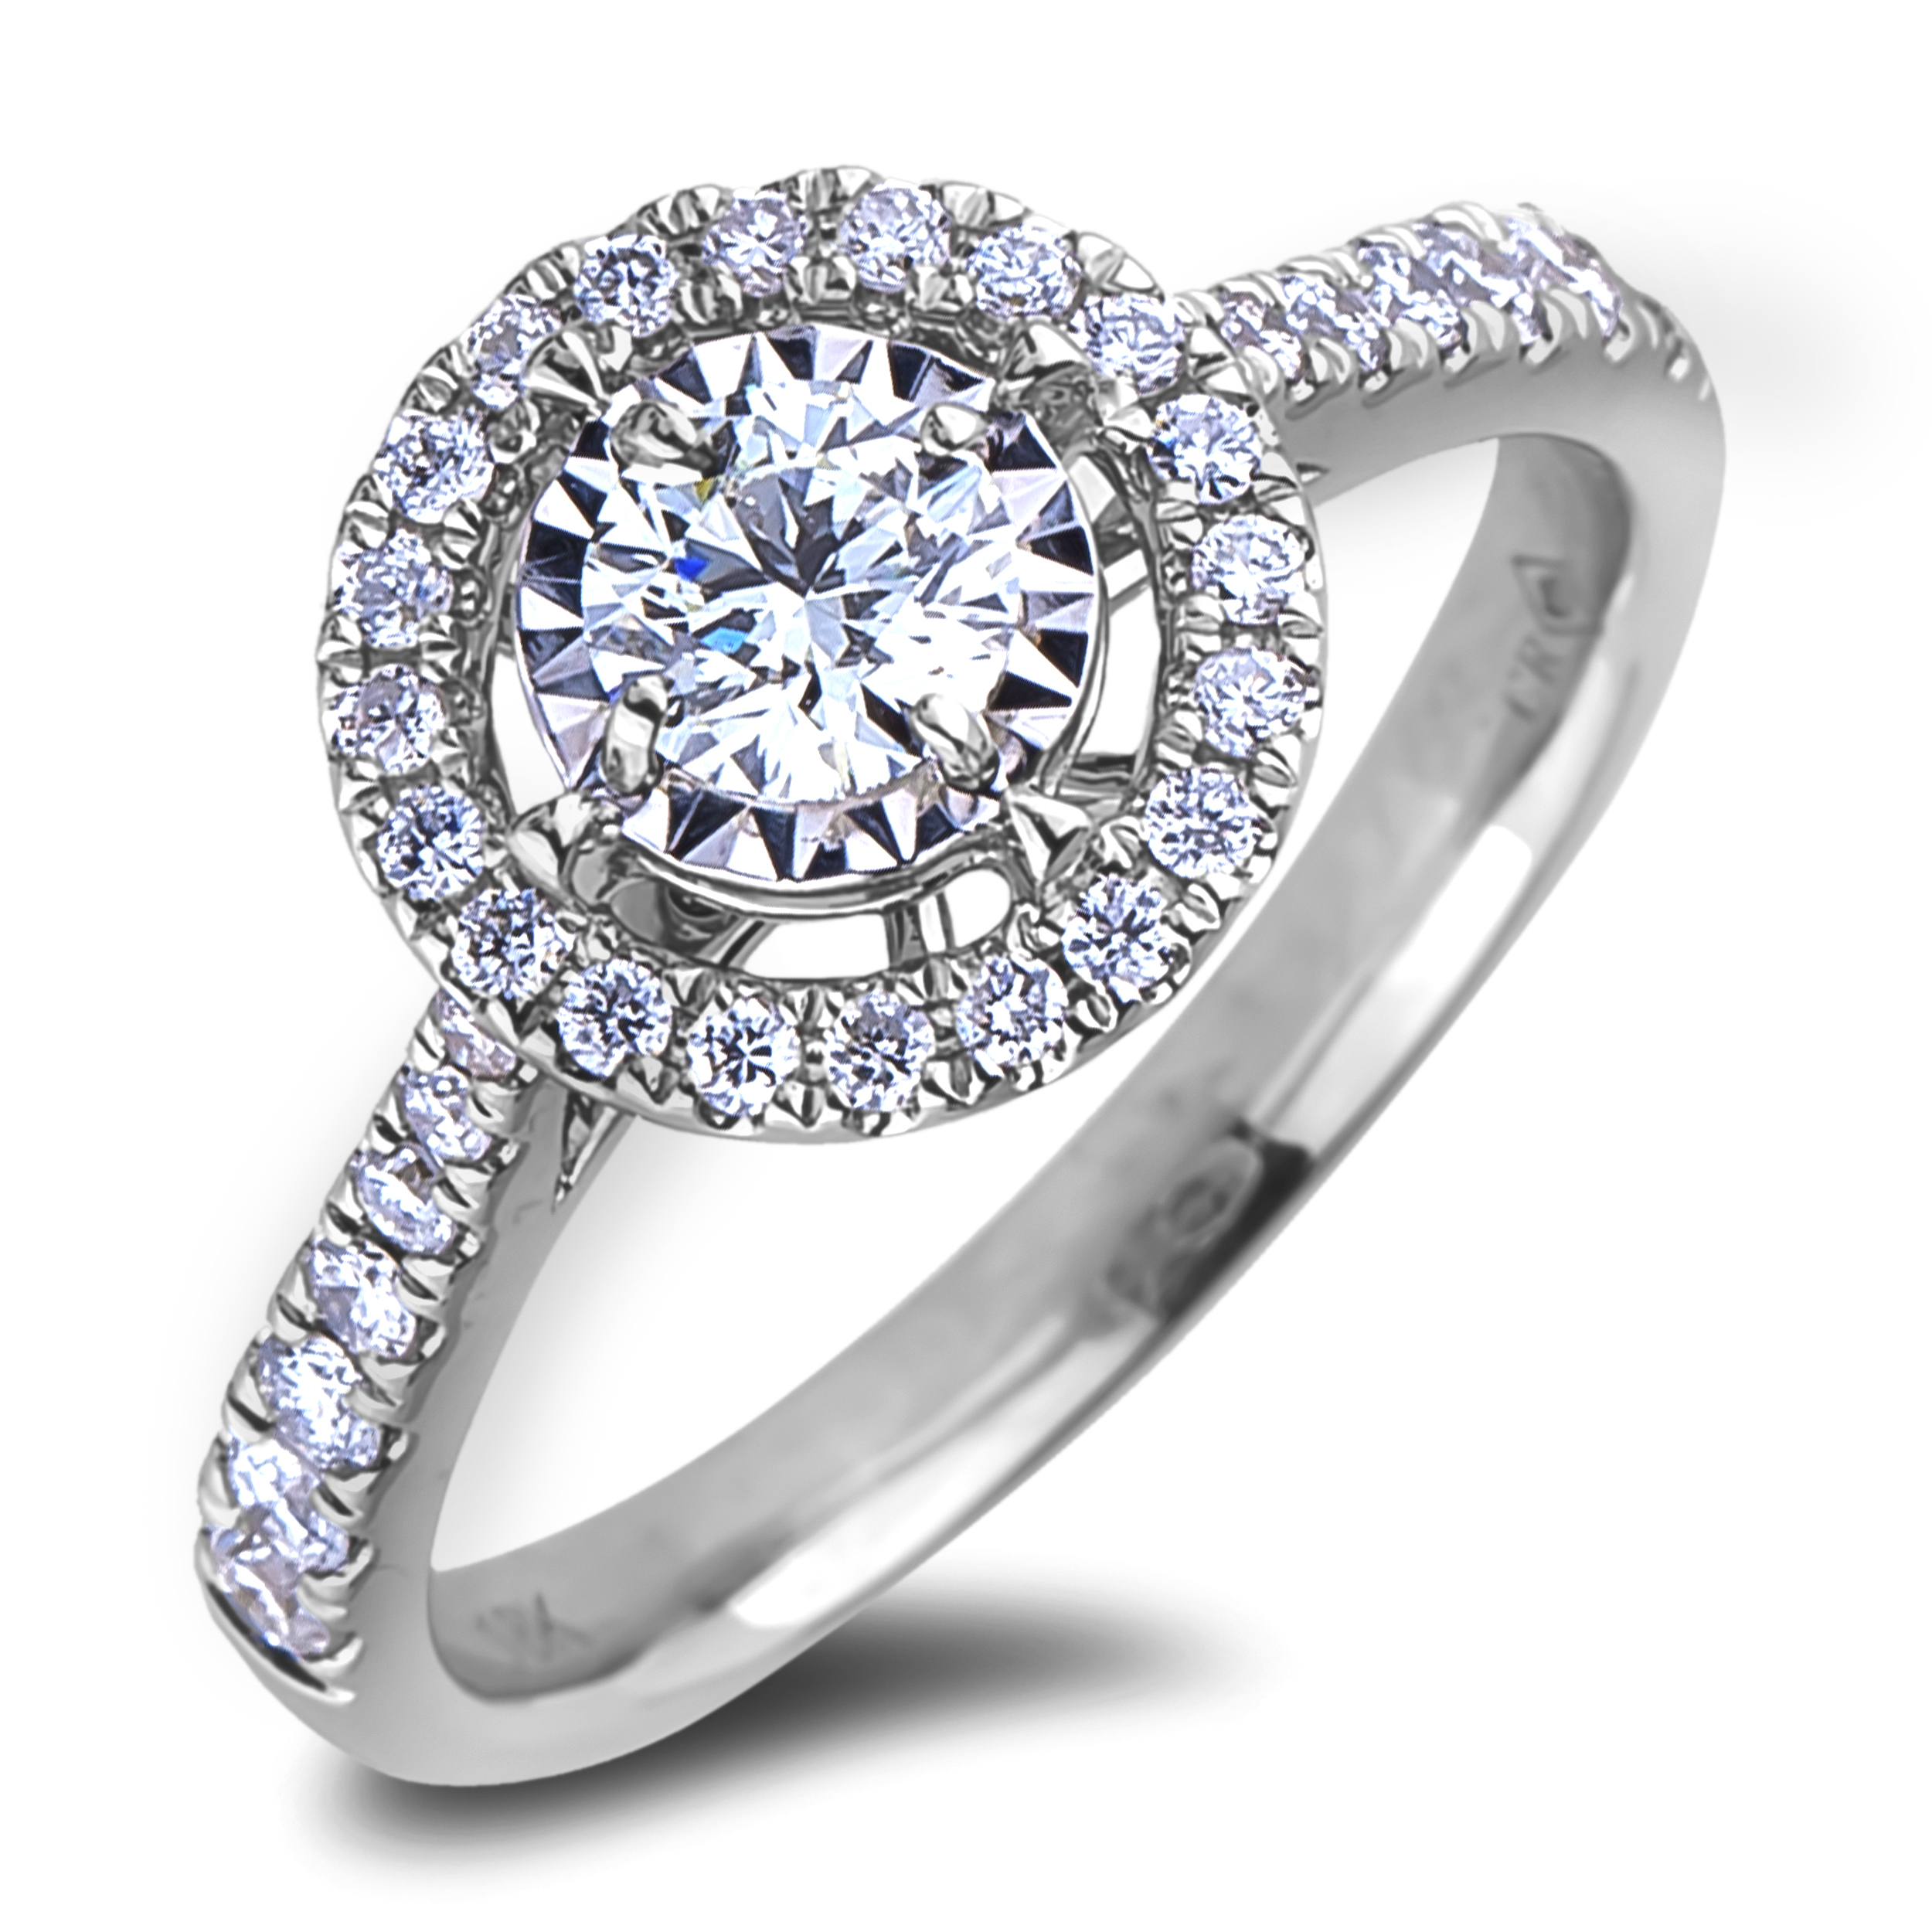 Diamond Engagement Halo Rings JS-AFCR1424035 (Rings)